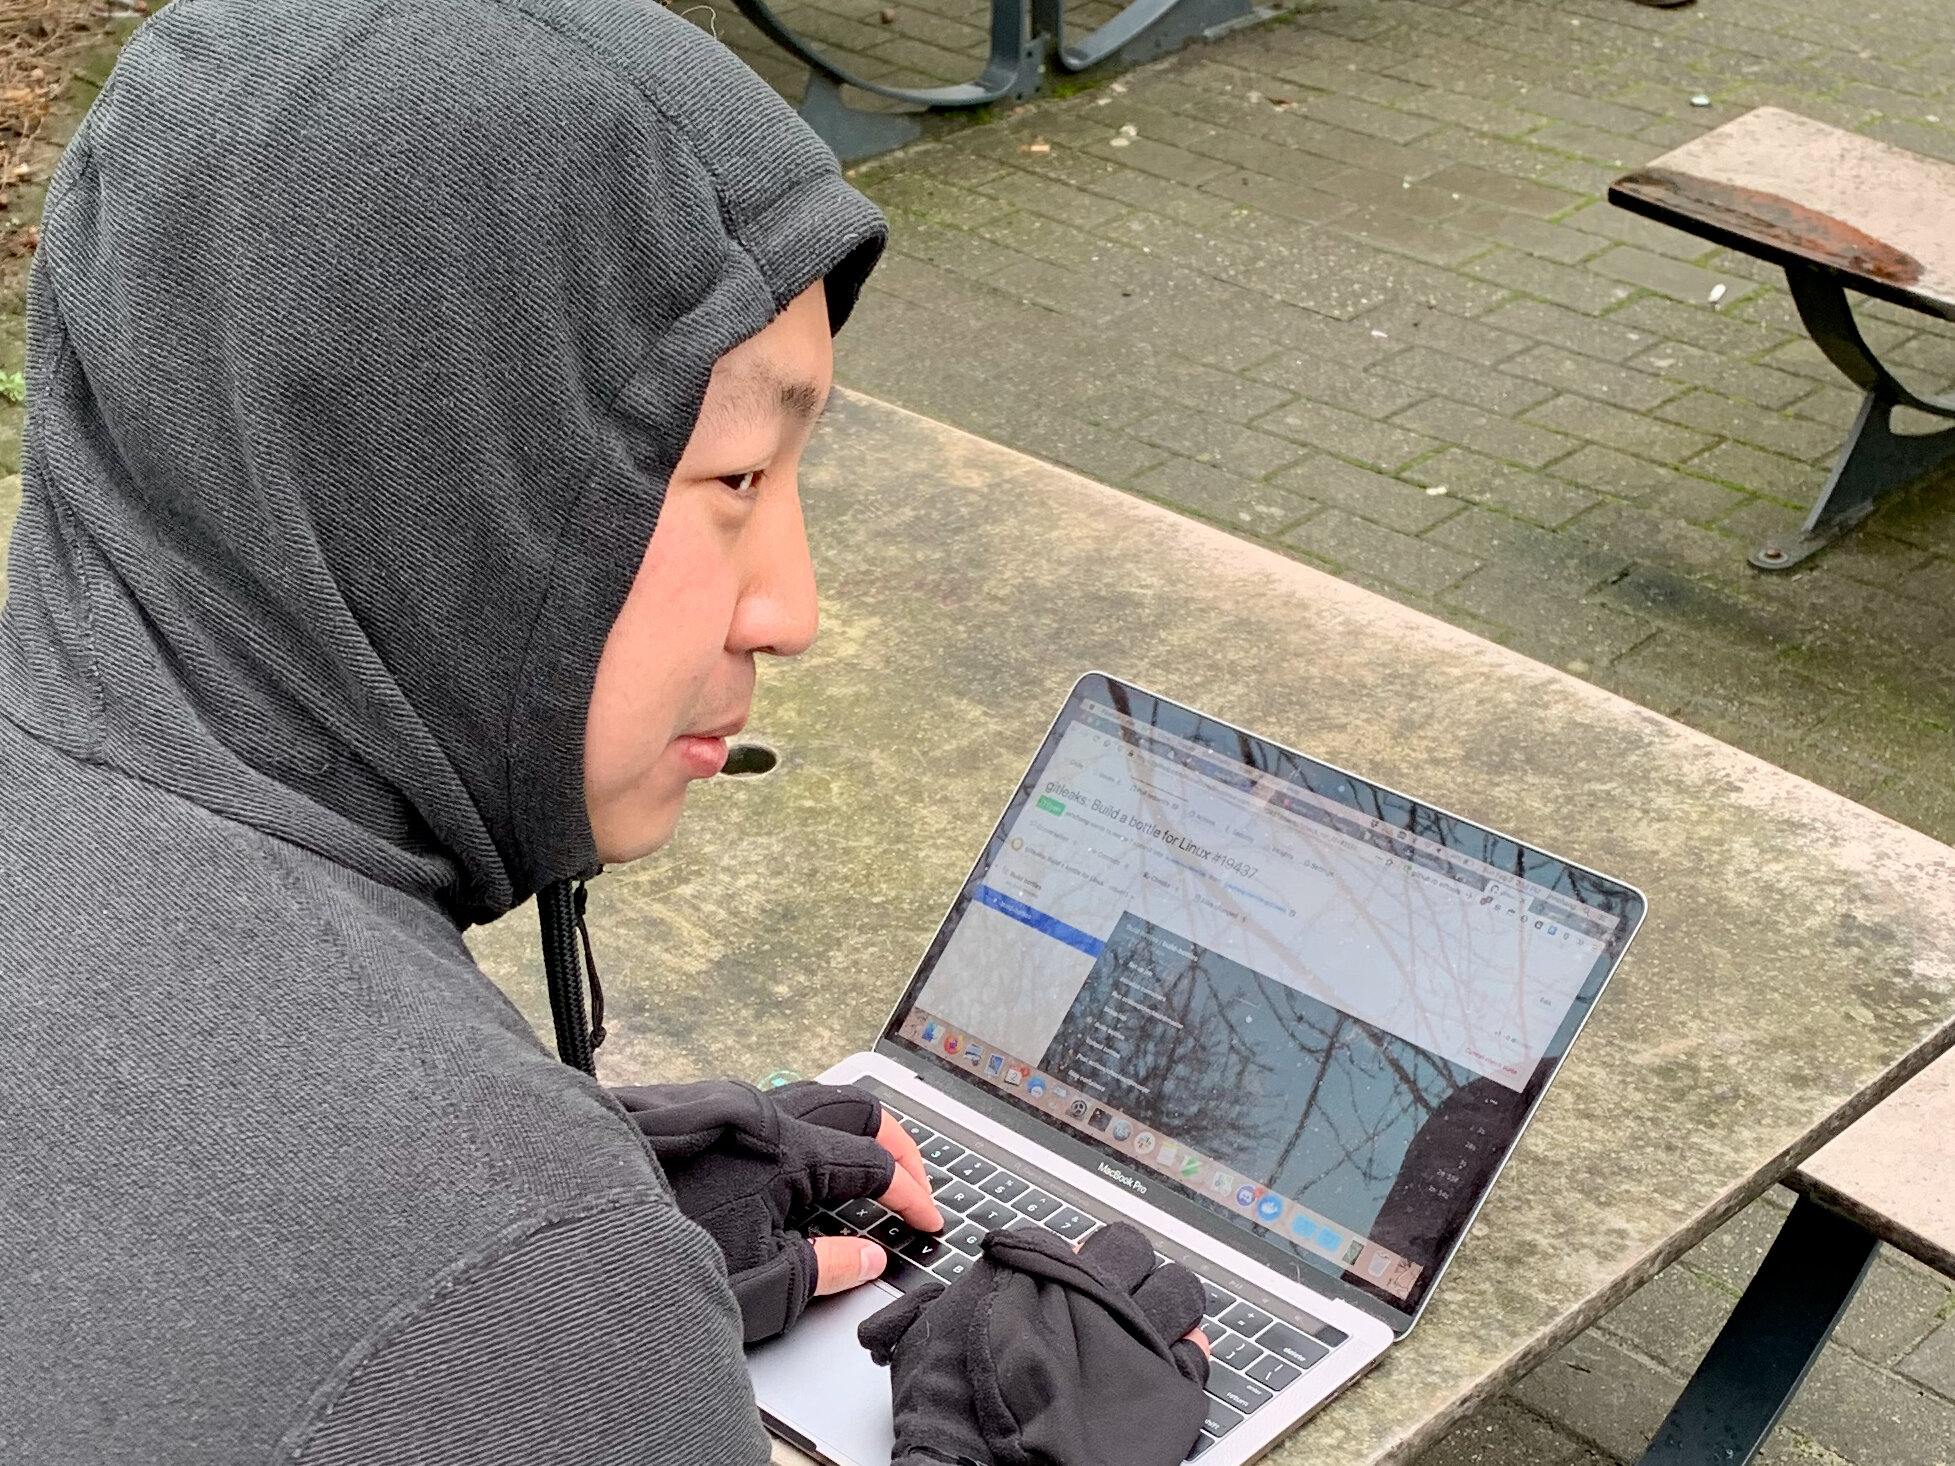 Jonathan hacking on continuous integration on his laptop outdoors in the cold.